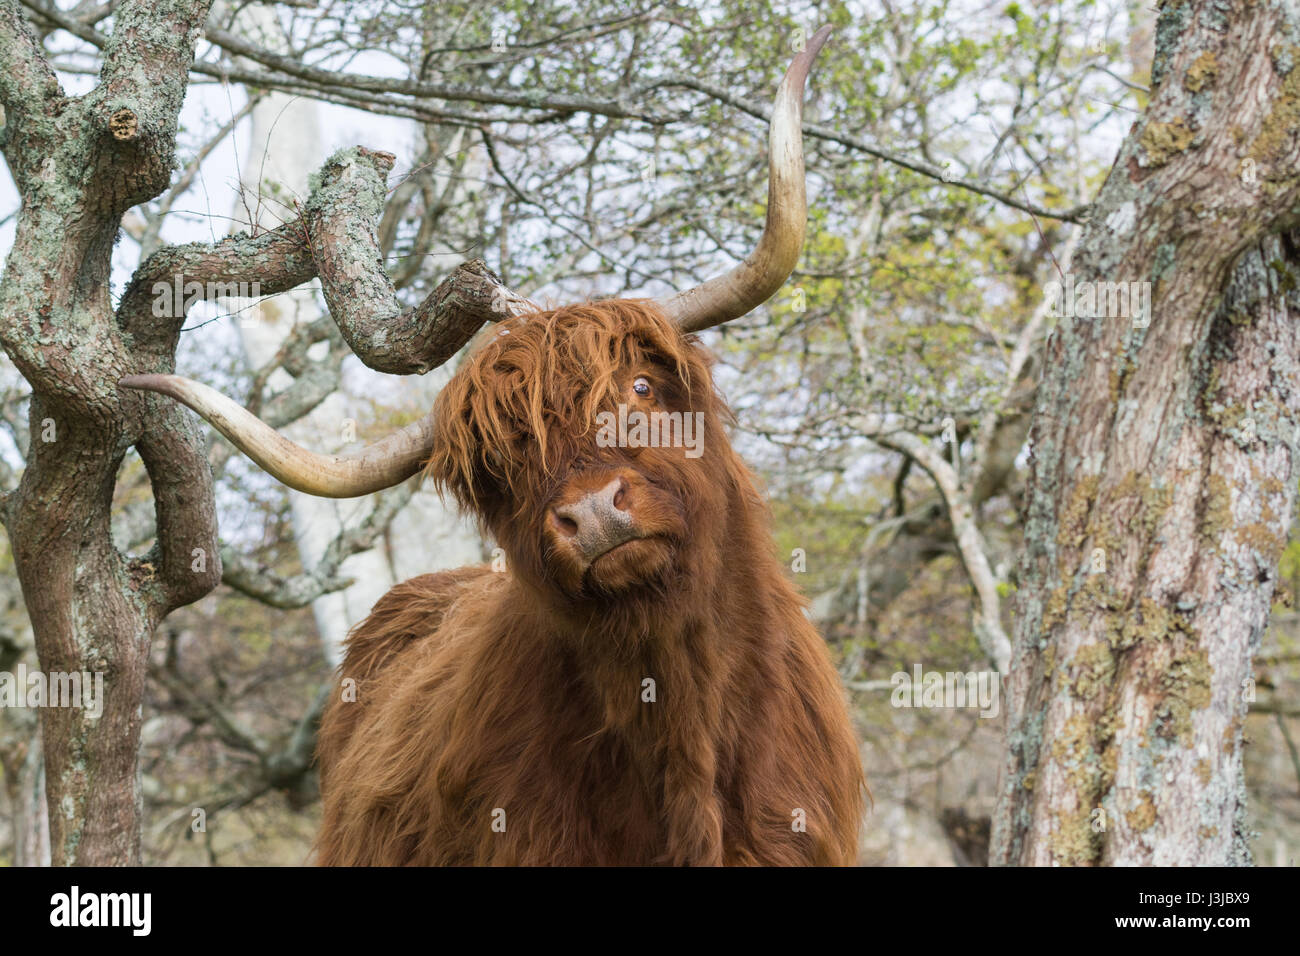 Highland cow funny scratching - Stock Image